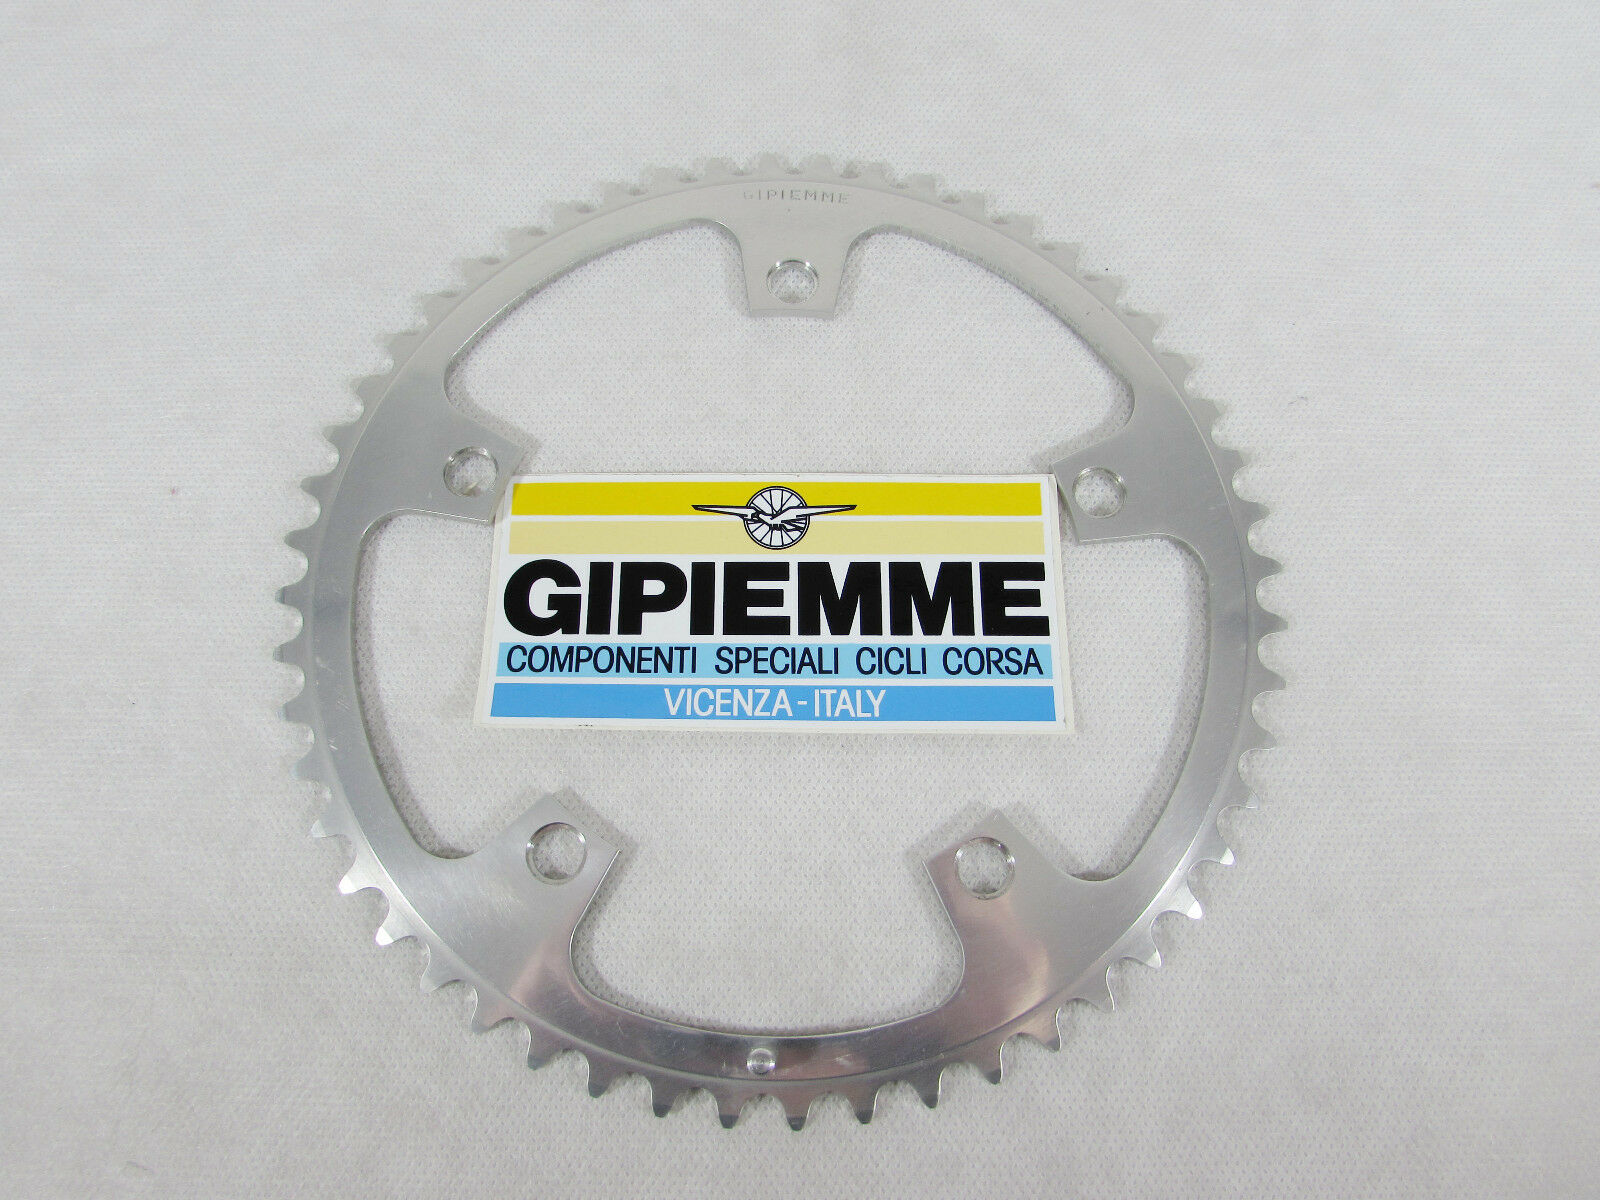 Vintage NOS GIPIEMME  SPECIAL 52t CHAIN RING, 144 BCD, fits Campagnolo  free delivery and returns